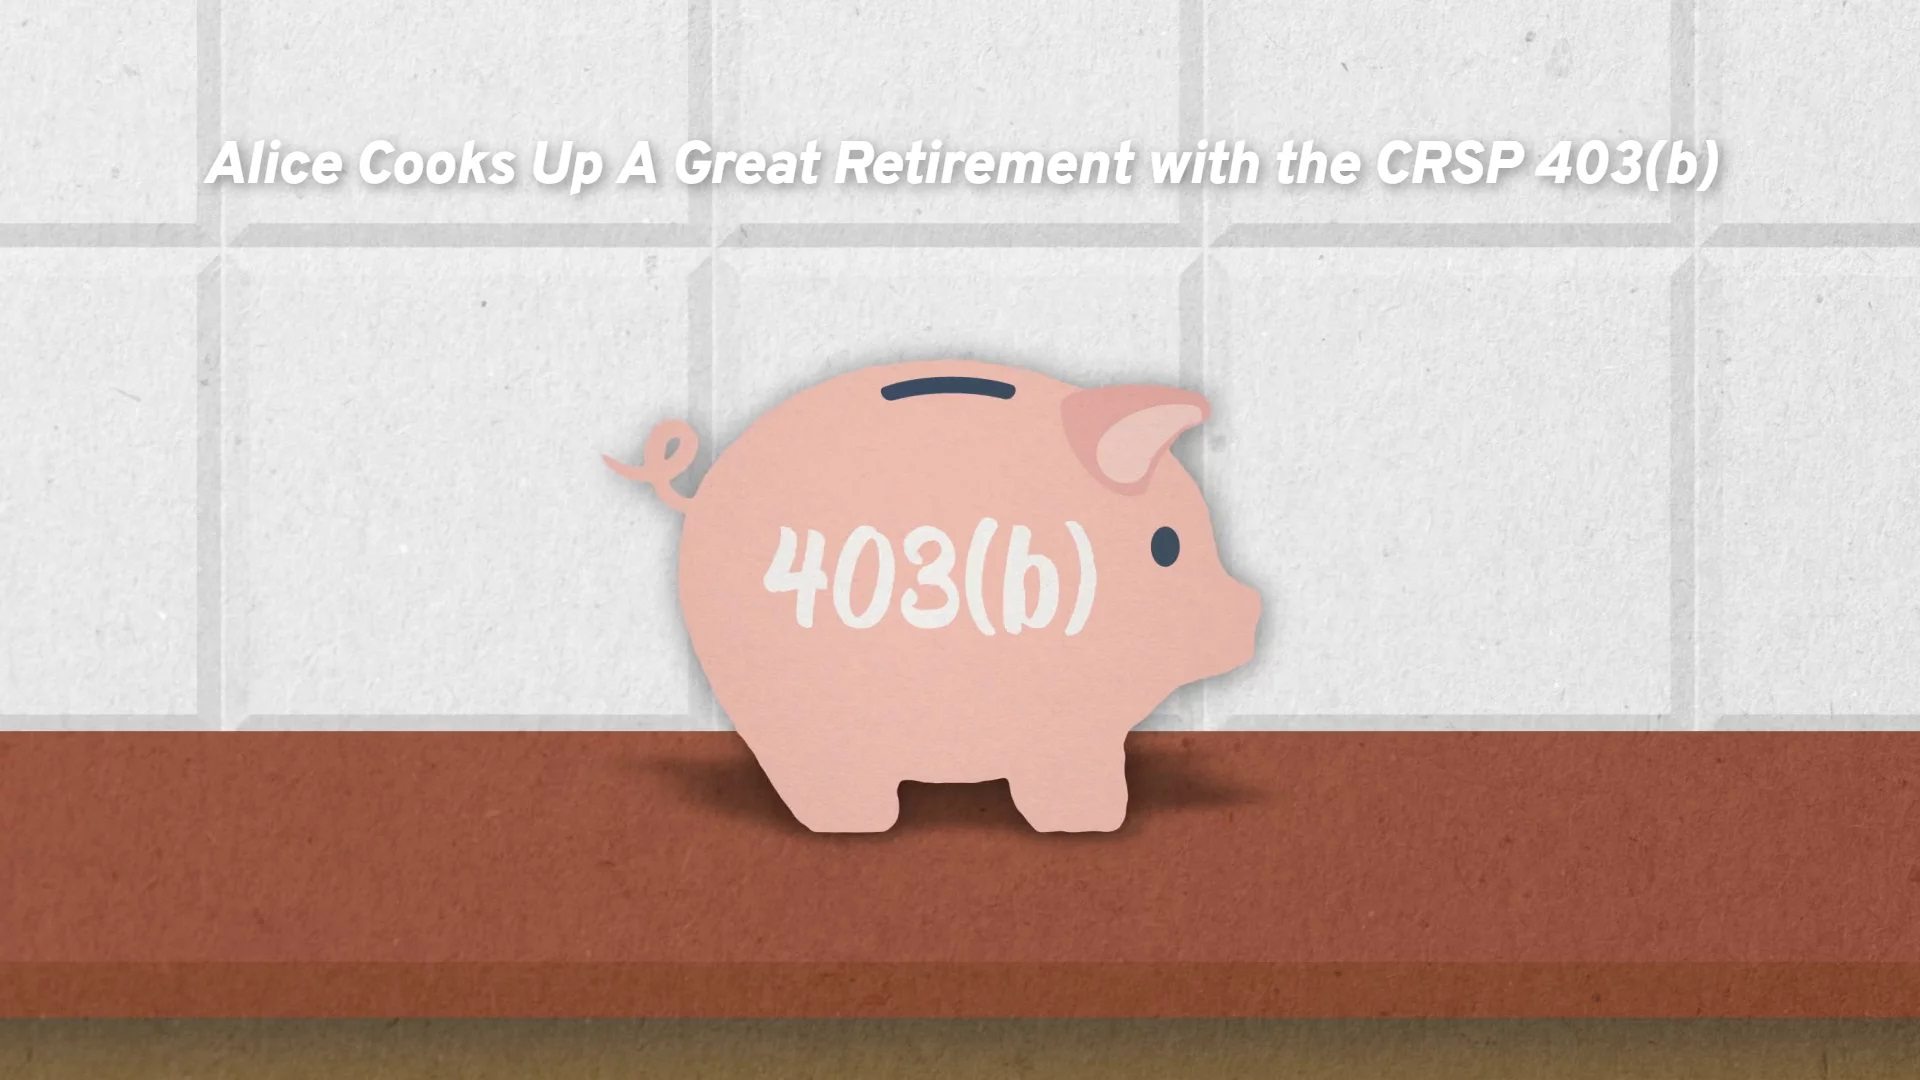 Alice Cooks Up A Great Retirement with the CRSP 403(b)